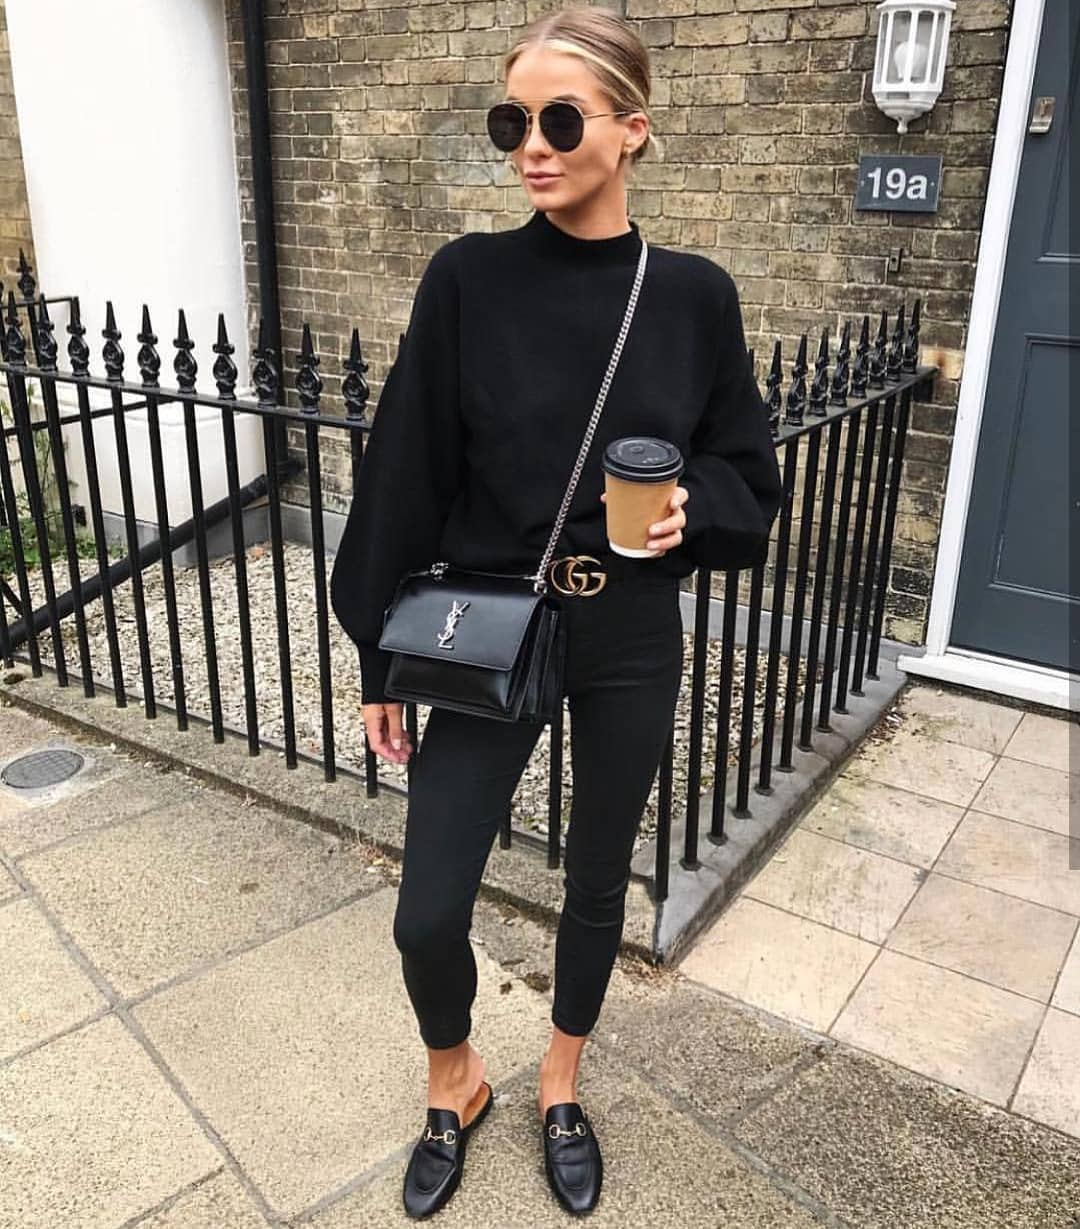 Oversized Sweater With Skinny Jeans And Loafers: All Black Outfit Idea For Fall 2020